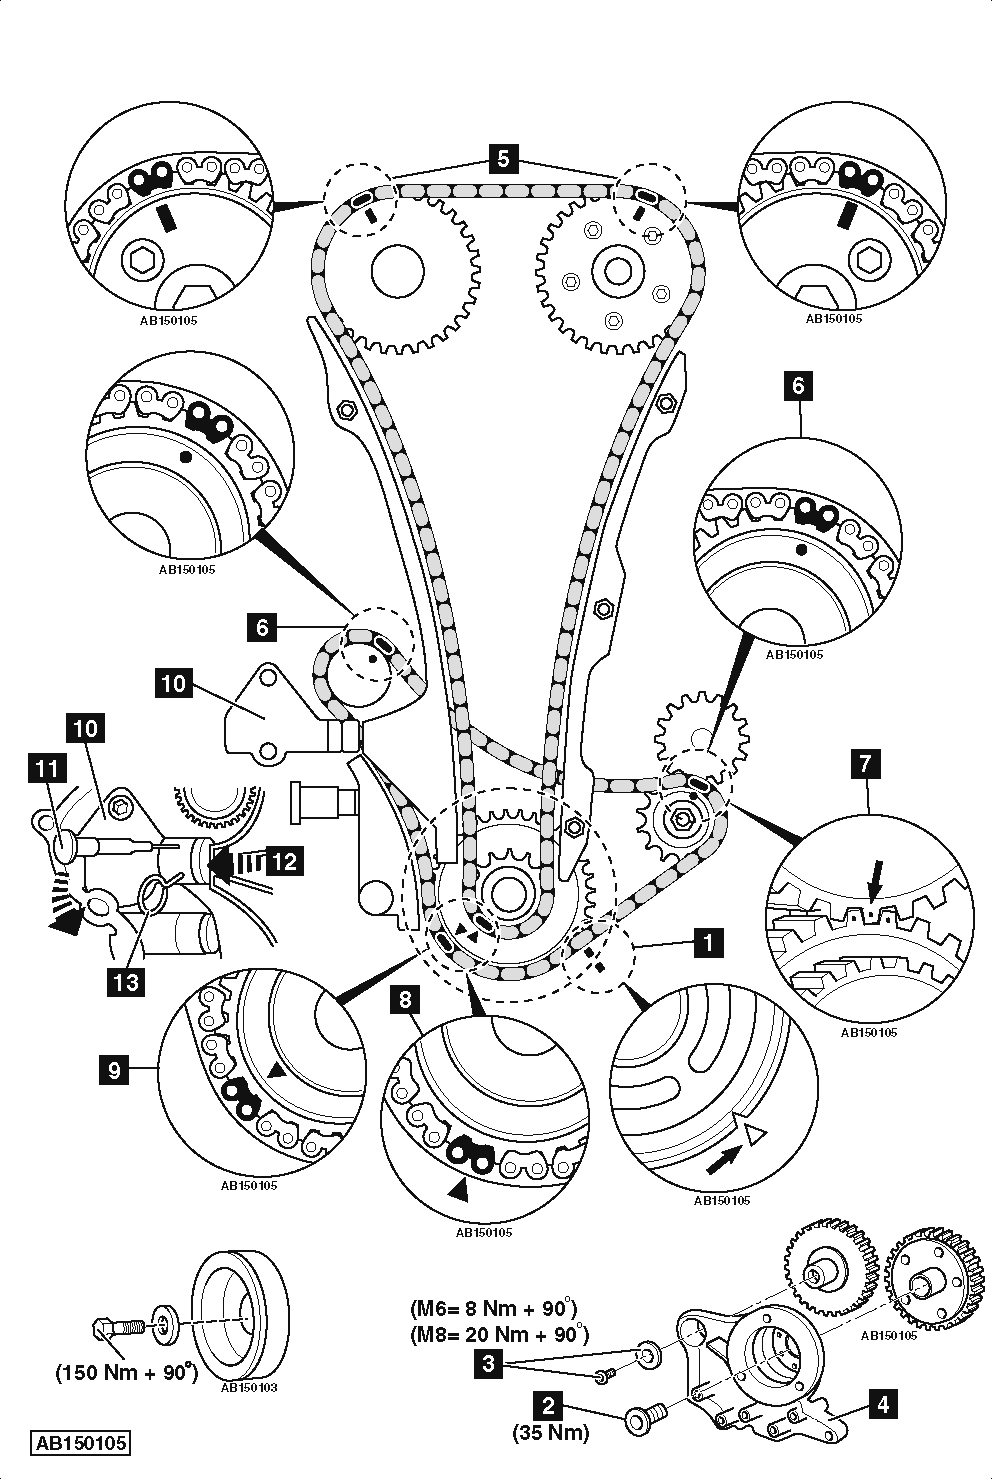 Service manual [How To Set Timing Chain On A 2009 Kia Rio